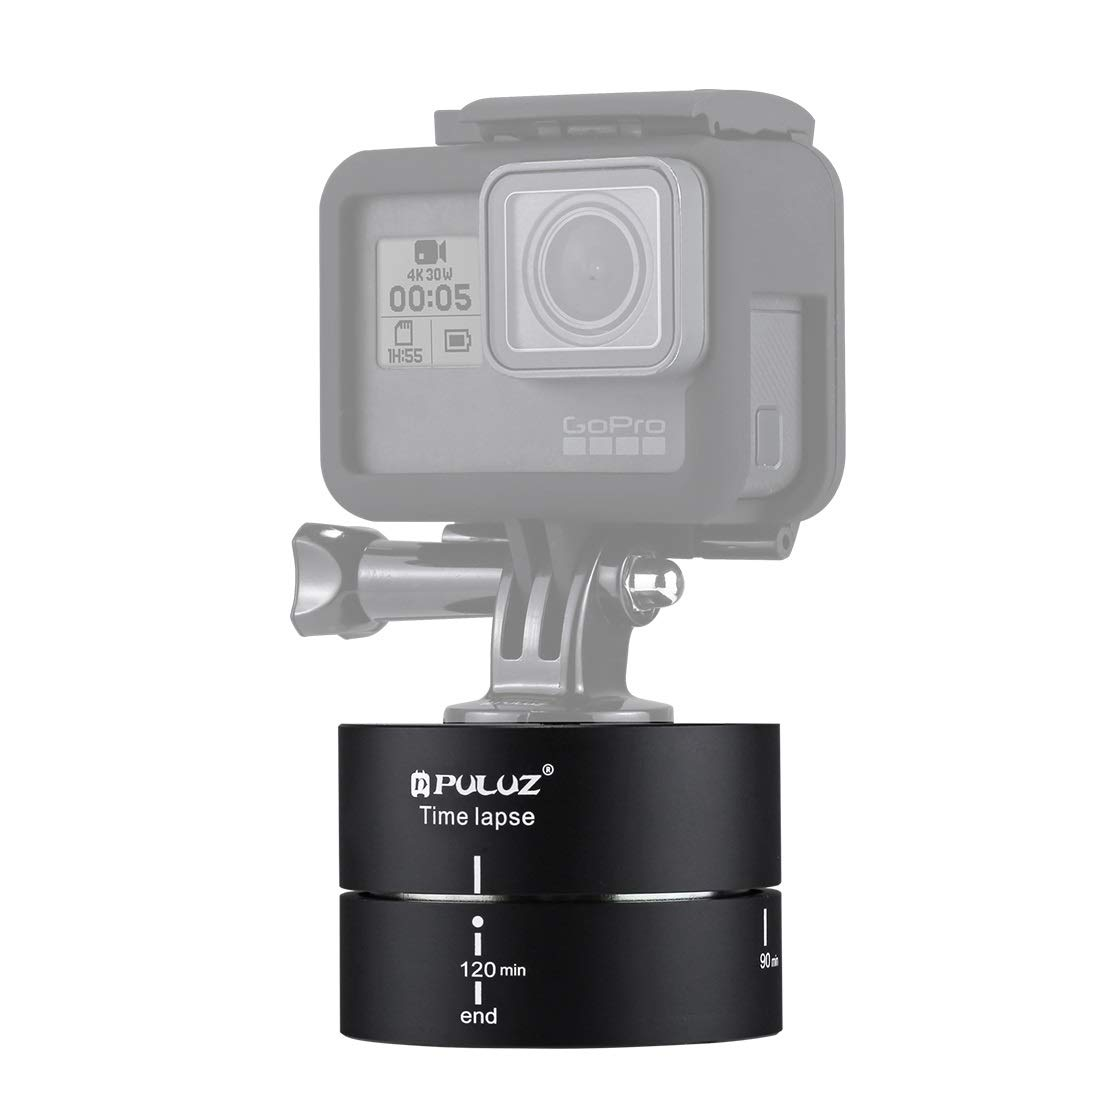 HEGUANGWEI Camera Mount 360 Degrees Panning Rotation 120 Minutes Time Lapse Stabilizer Tripod Head Adapter Photography by HEGUANGWEI